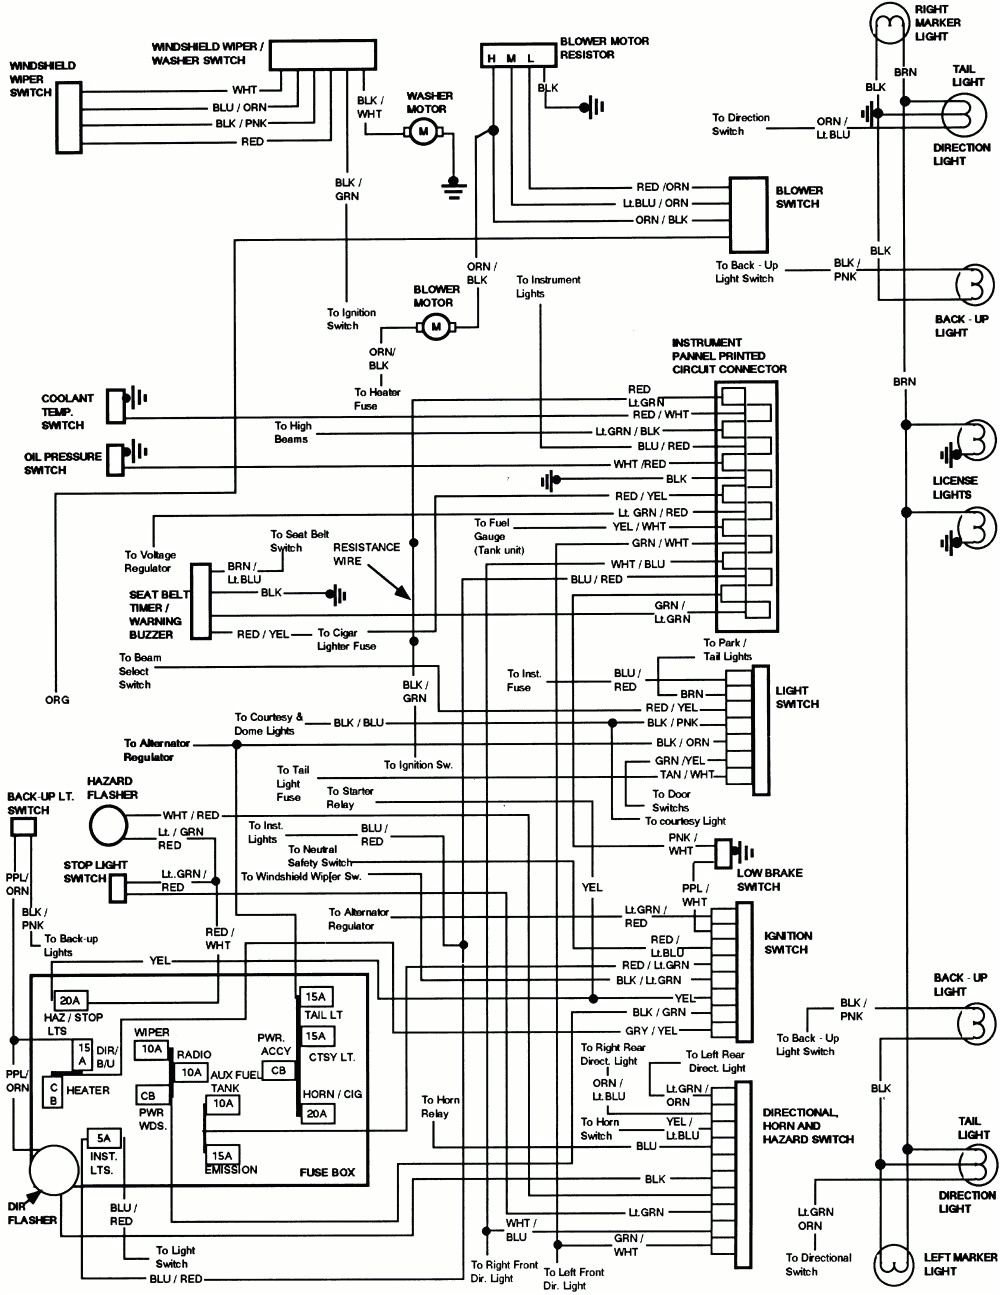 wiring diagram for 1975 ford f250 wiring diagram files 1975 ford f100 ignition switch wiring diagram 1975 ford f100 electrical diagram